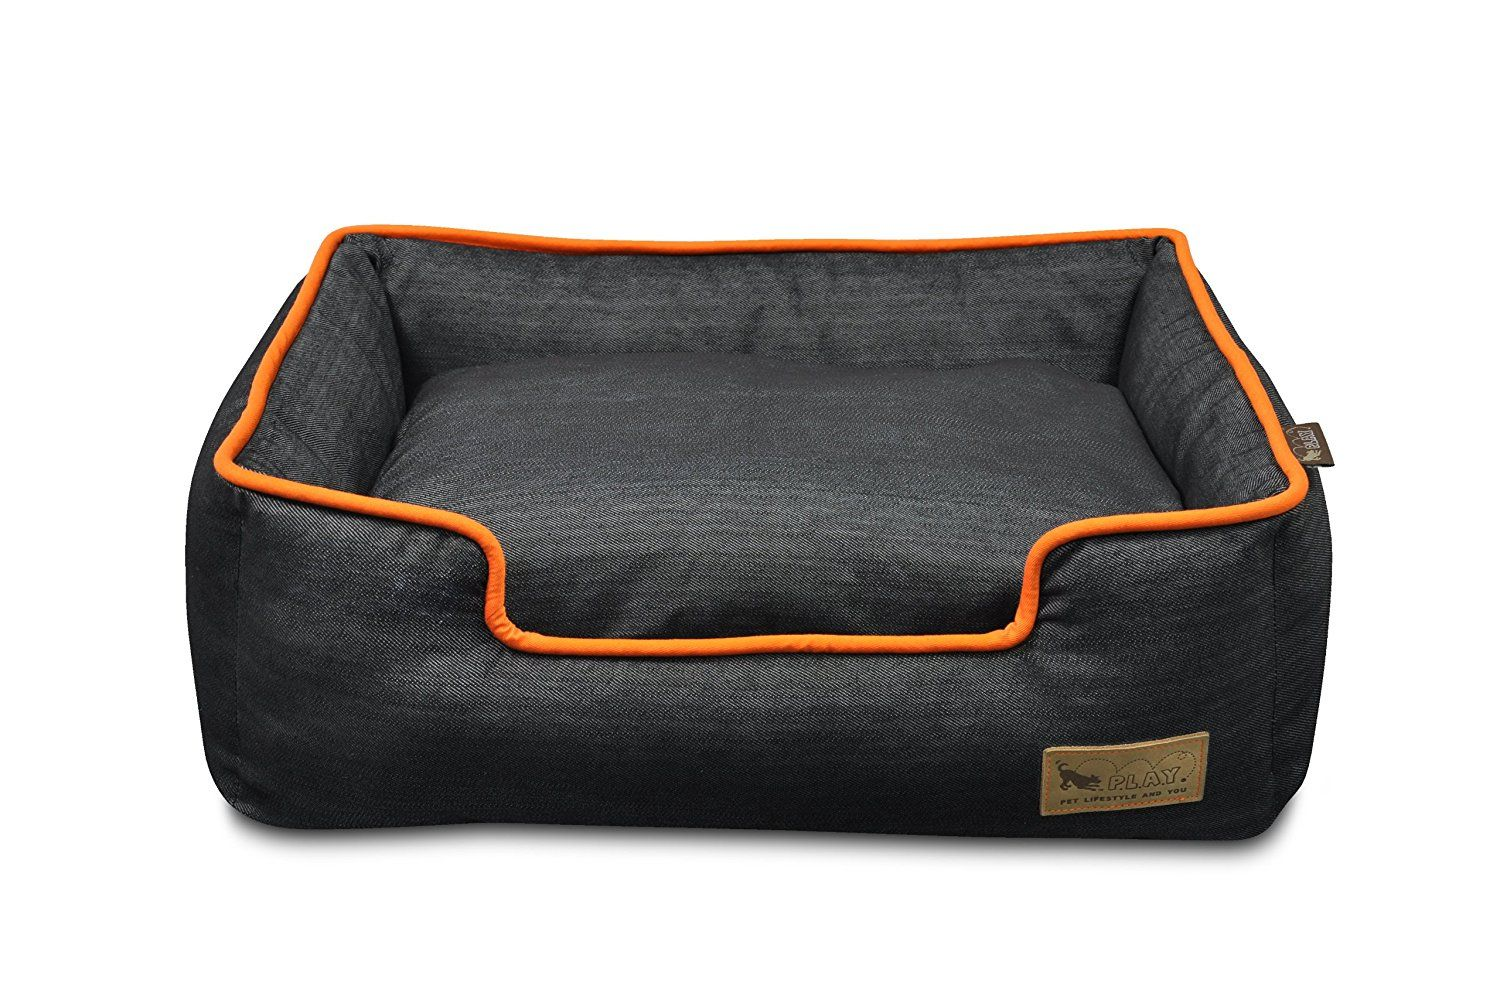 P L A Y Pet Lifestyle And You Lounge Beds For Dogs Click Image To Review More Details This Is An Affiliate Link Pet Sofa Denim Dog Bed Dog Bed